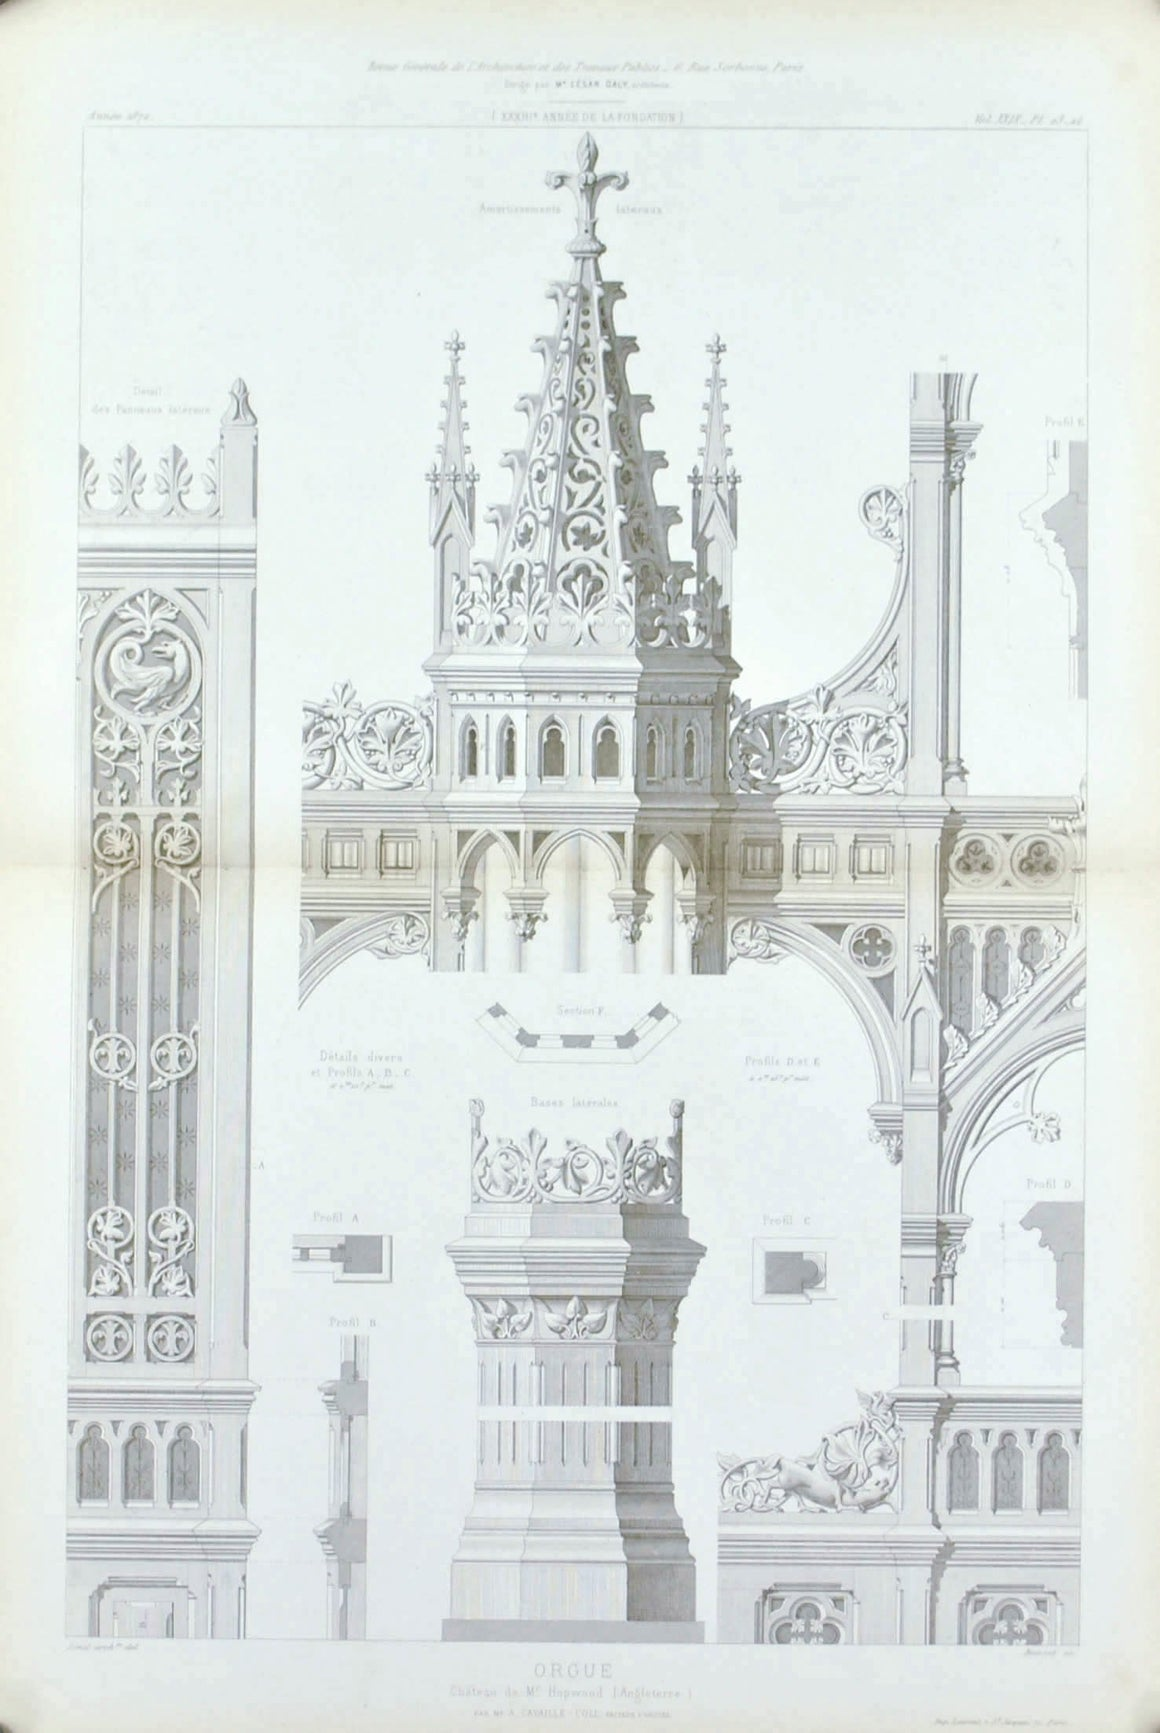 1872 Lg Architecture Antique Print Ornate Church Organ Pillar Design (Orgue)